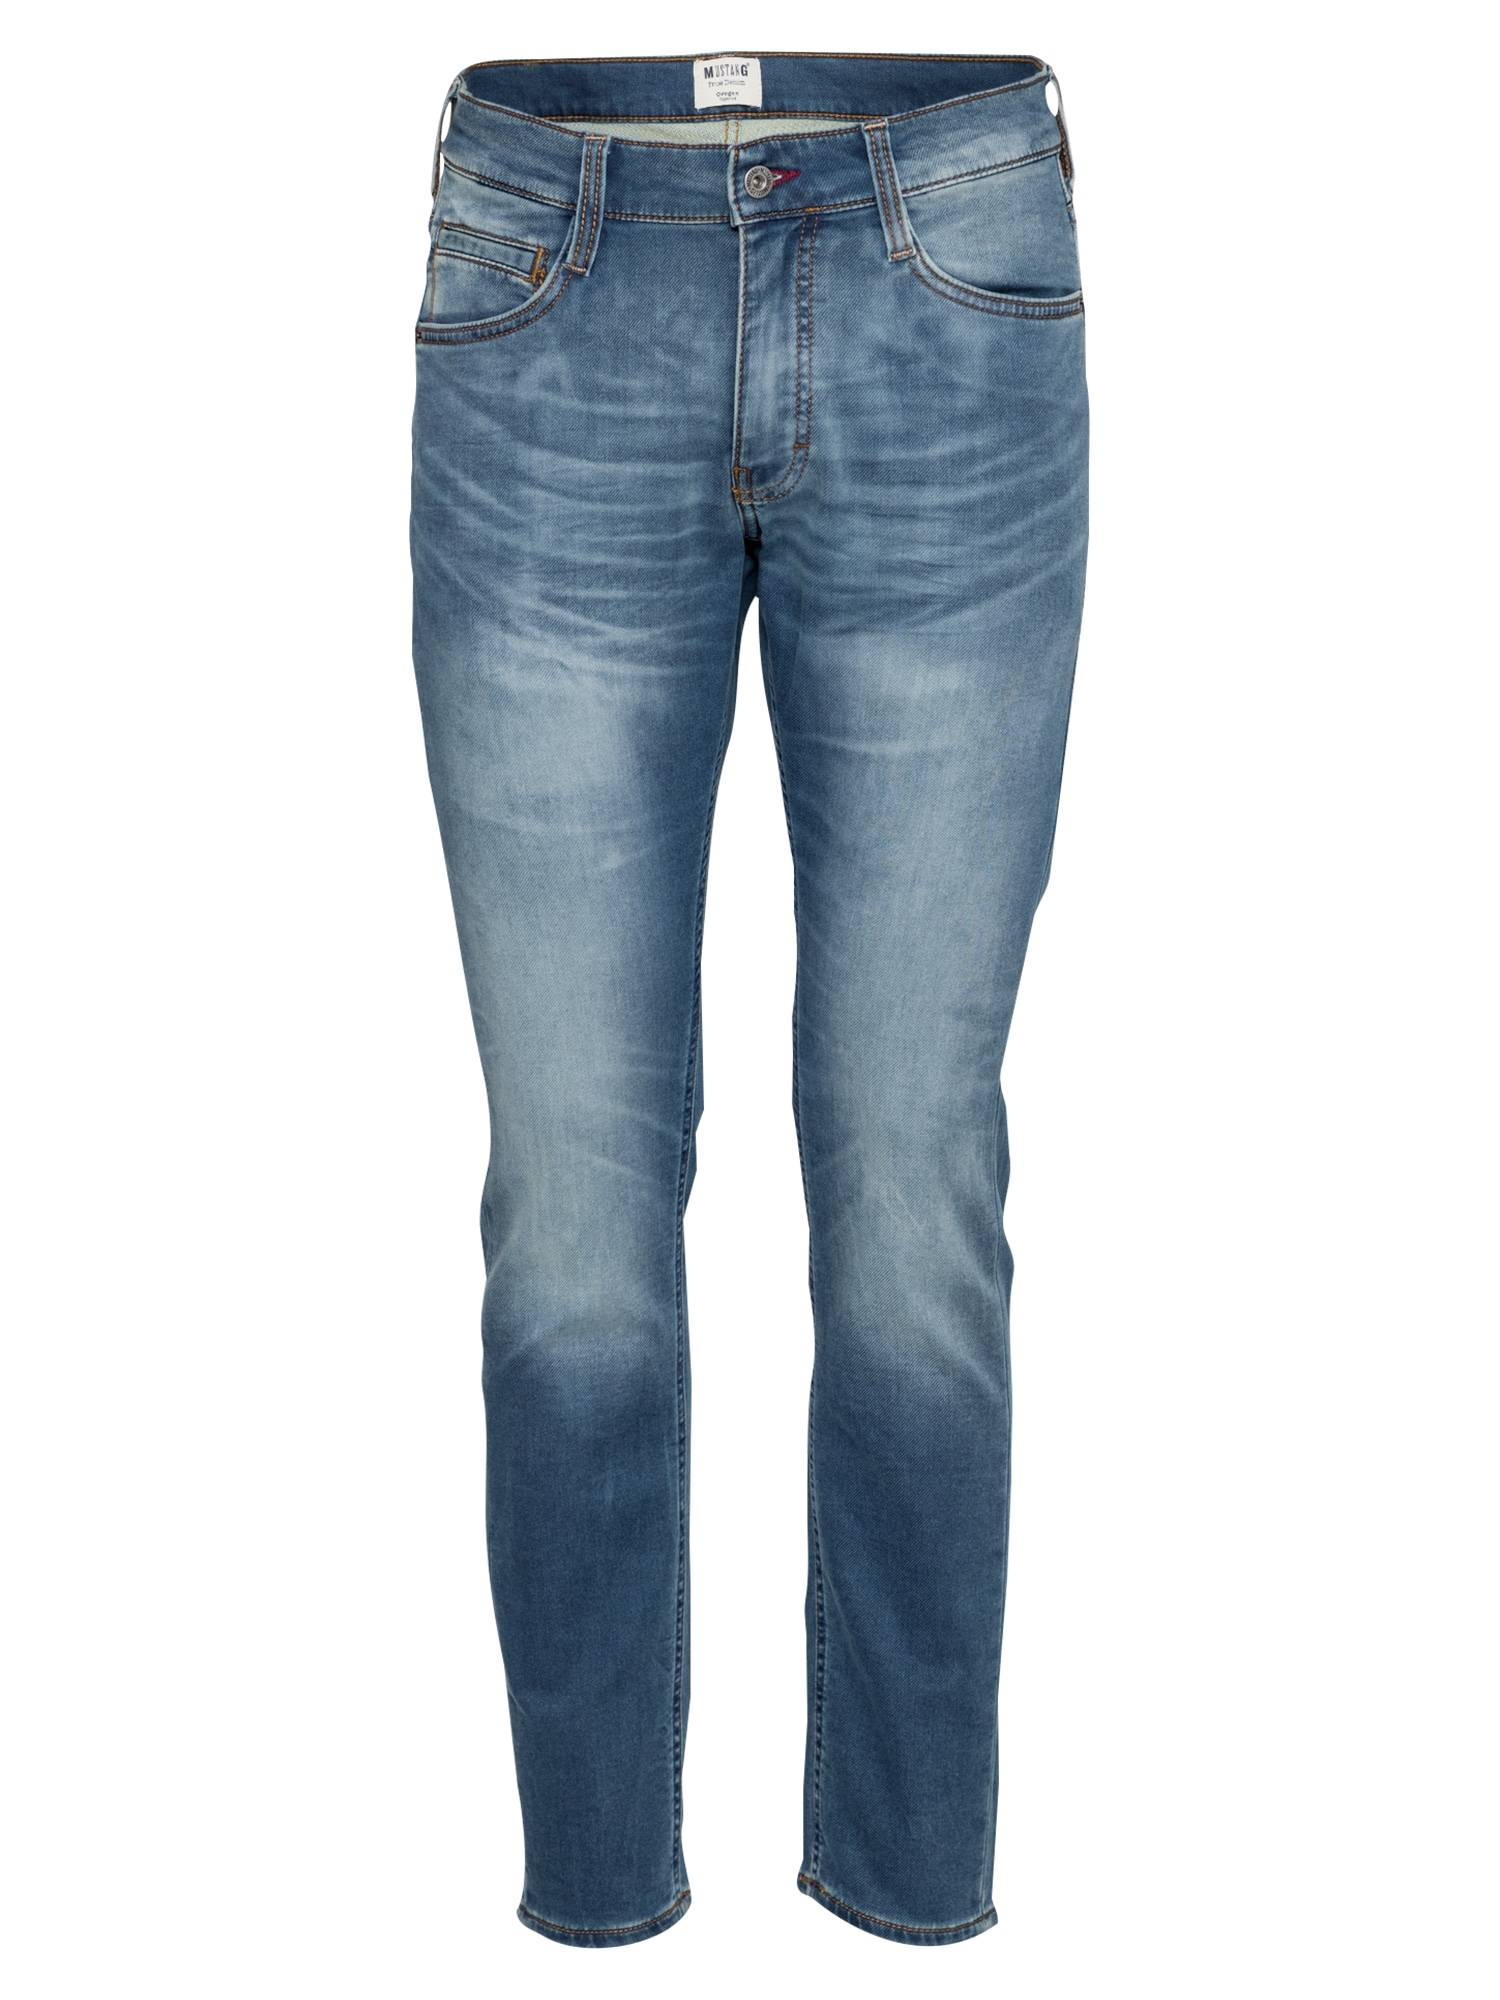 MUSTANG Jean 'Oregon Tapered K'  - Bleu - Taille: 30 - male